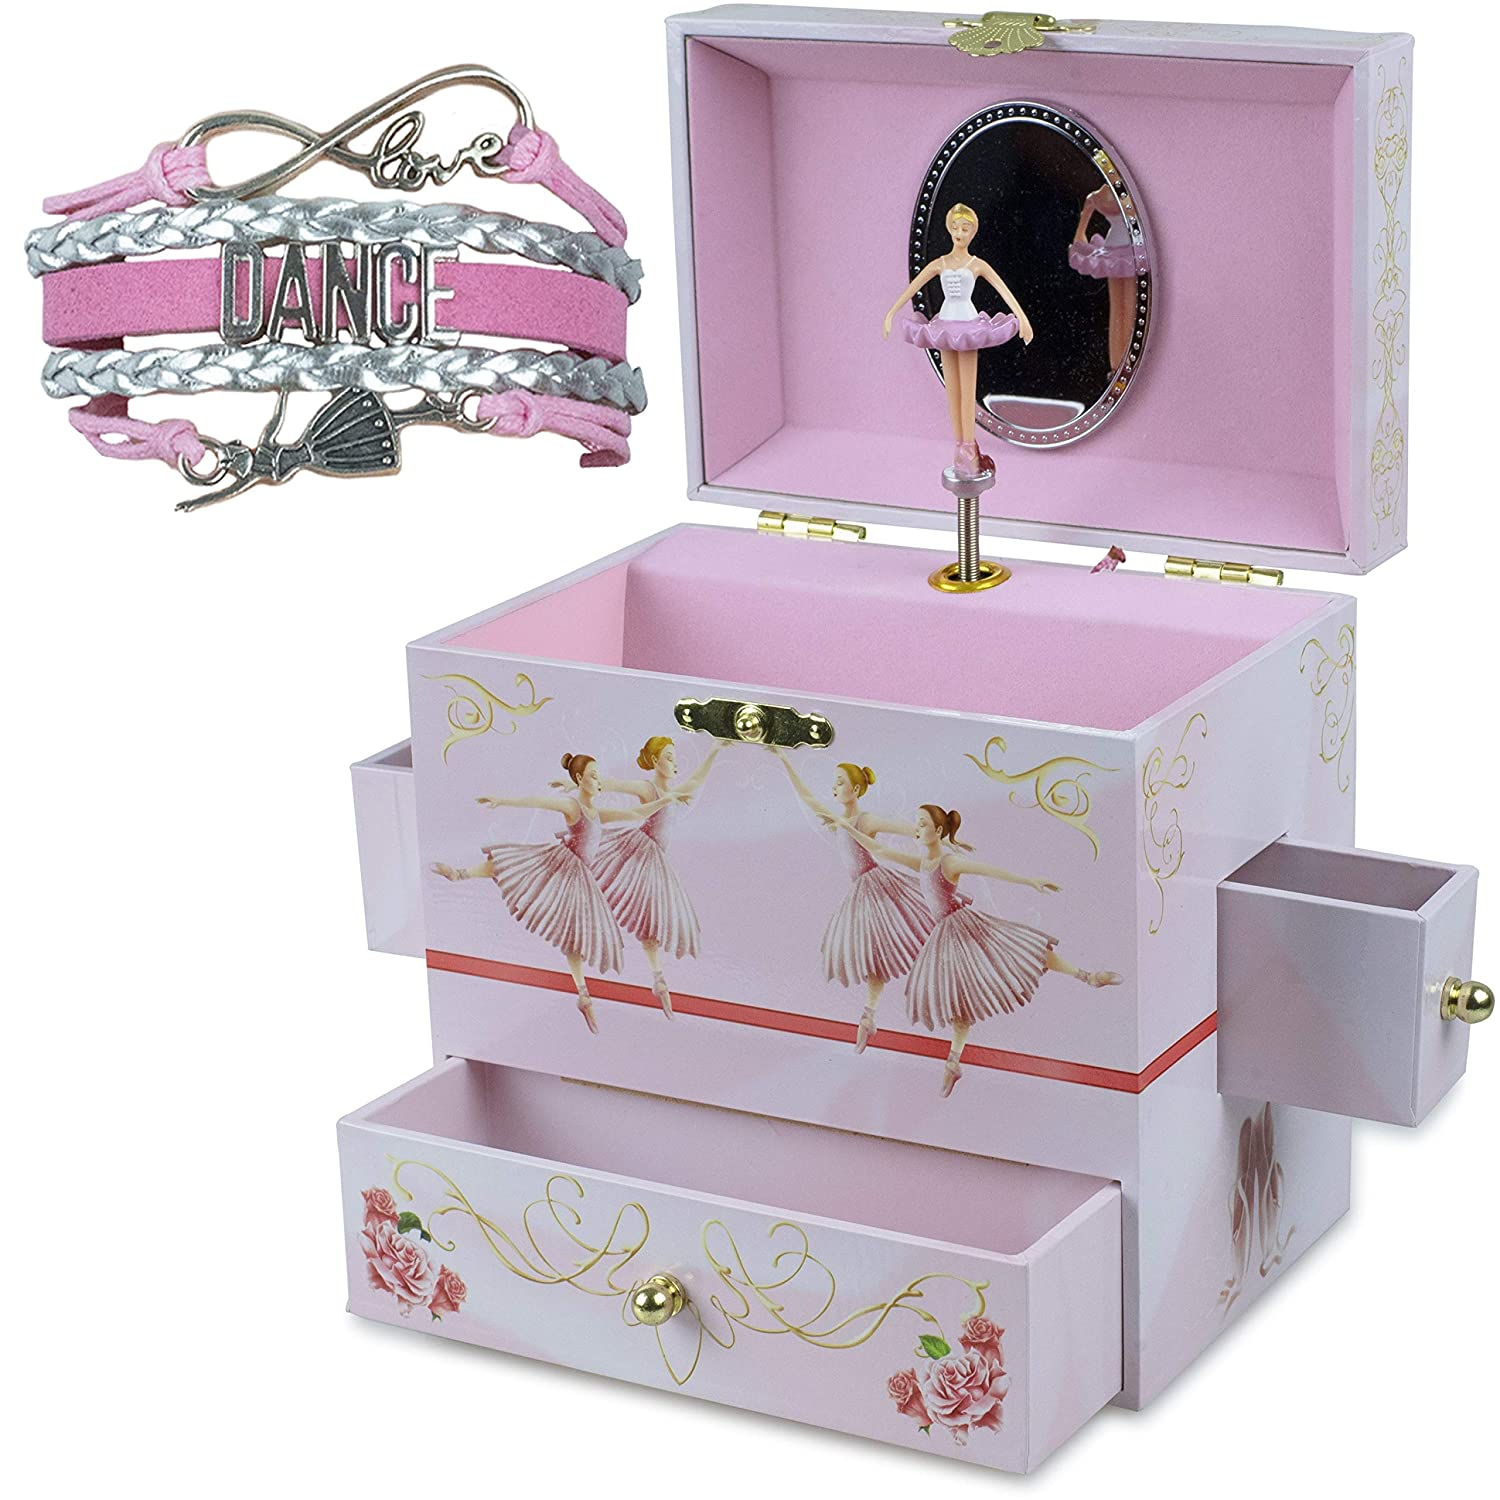 ShameOnJane Beautiful Ballerina Jewelry Box - A Music Box for Girls with Four Drawers and The Music of Swan Lake, a Perfect First Jewelry Box for Little Girls - and a Bonus Dance Bracelet!